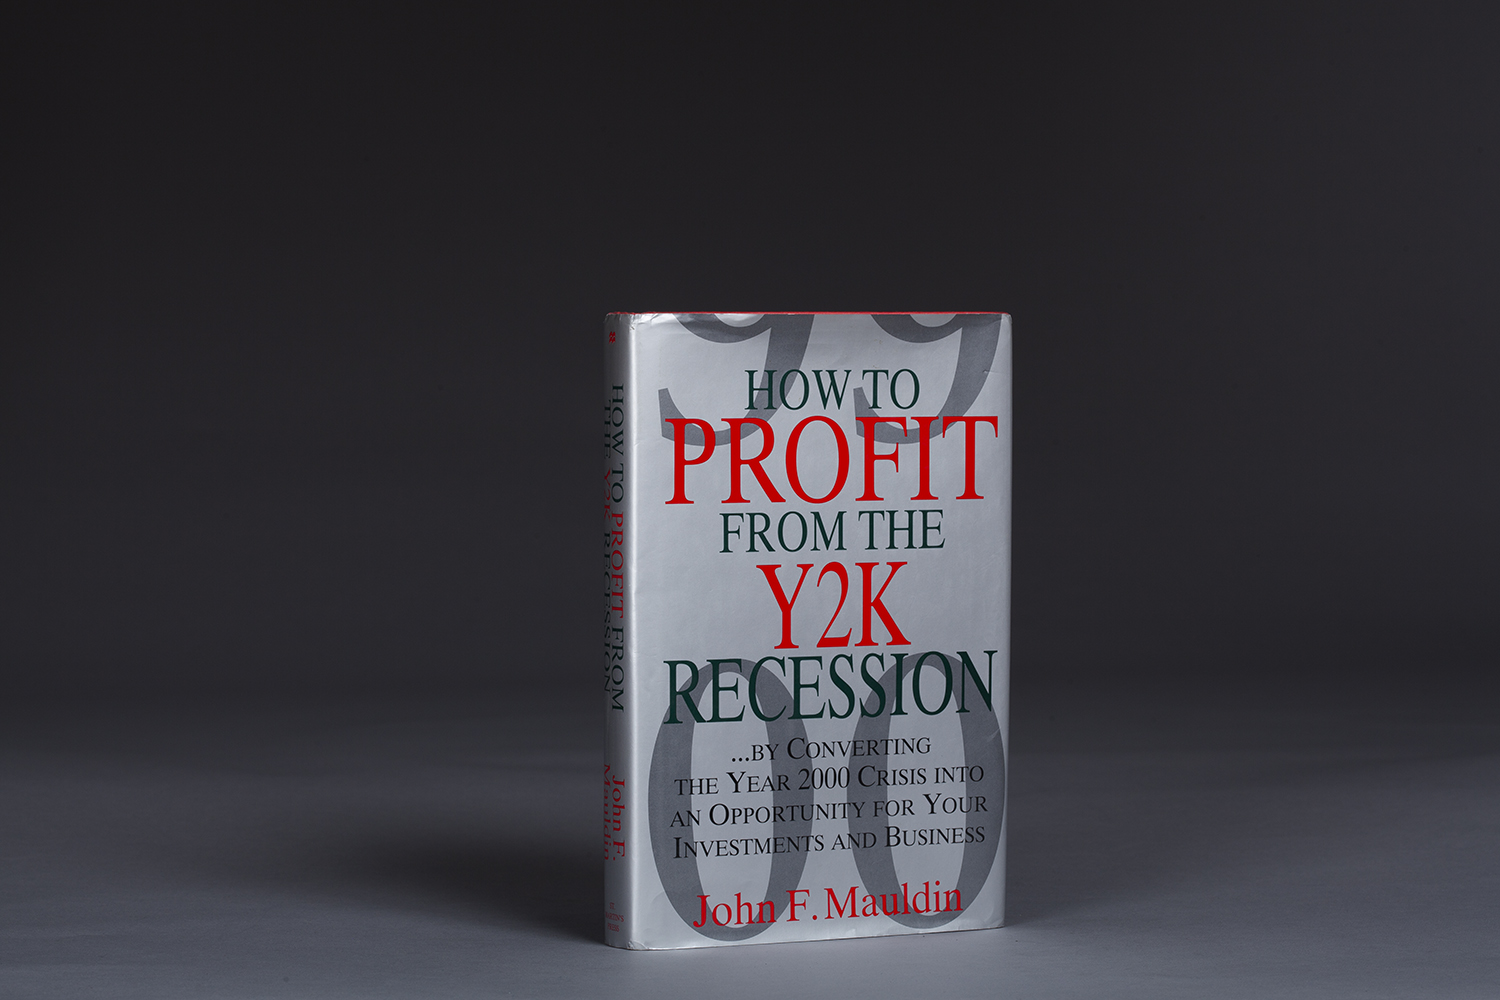 How to Profit from the Y2K Recession - 0010 Cover.jpg